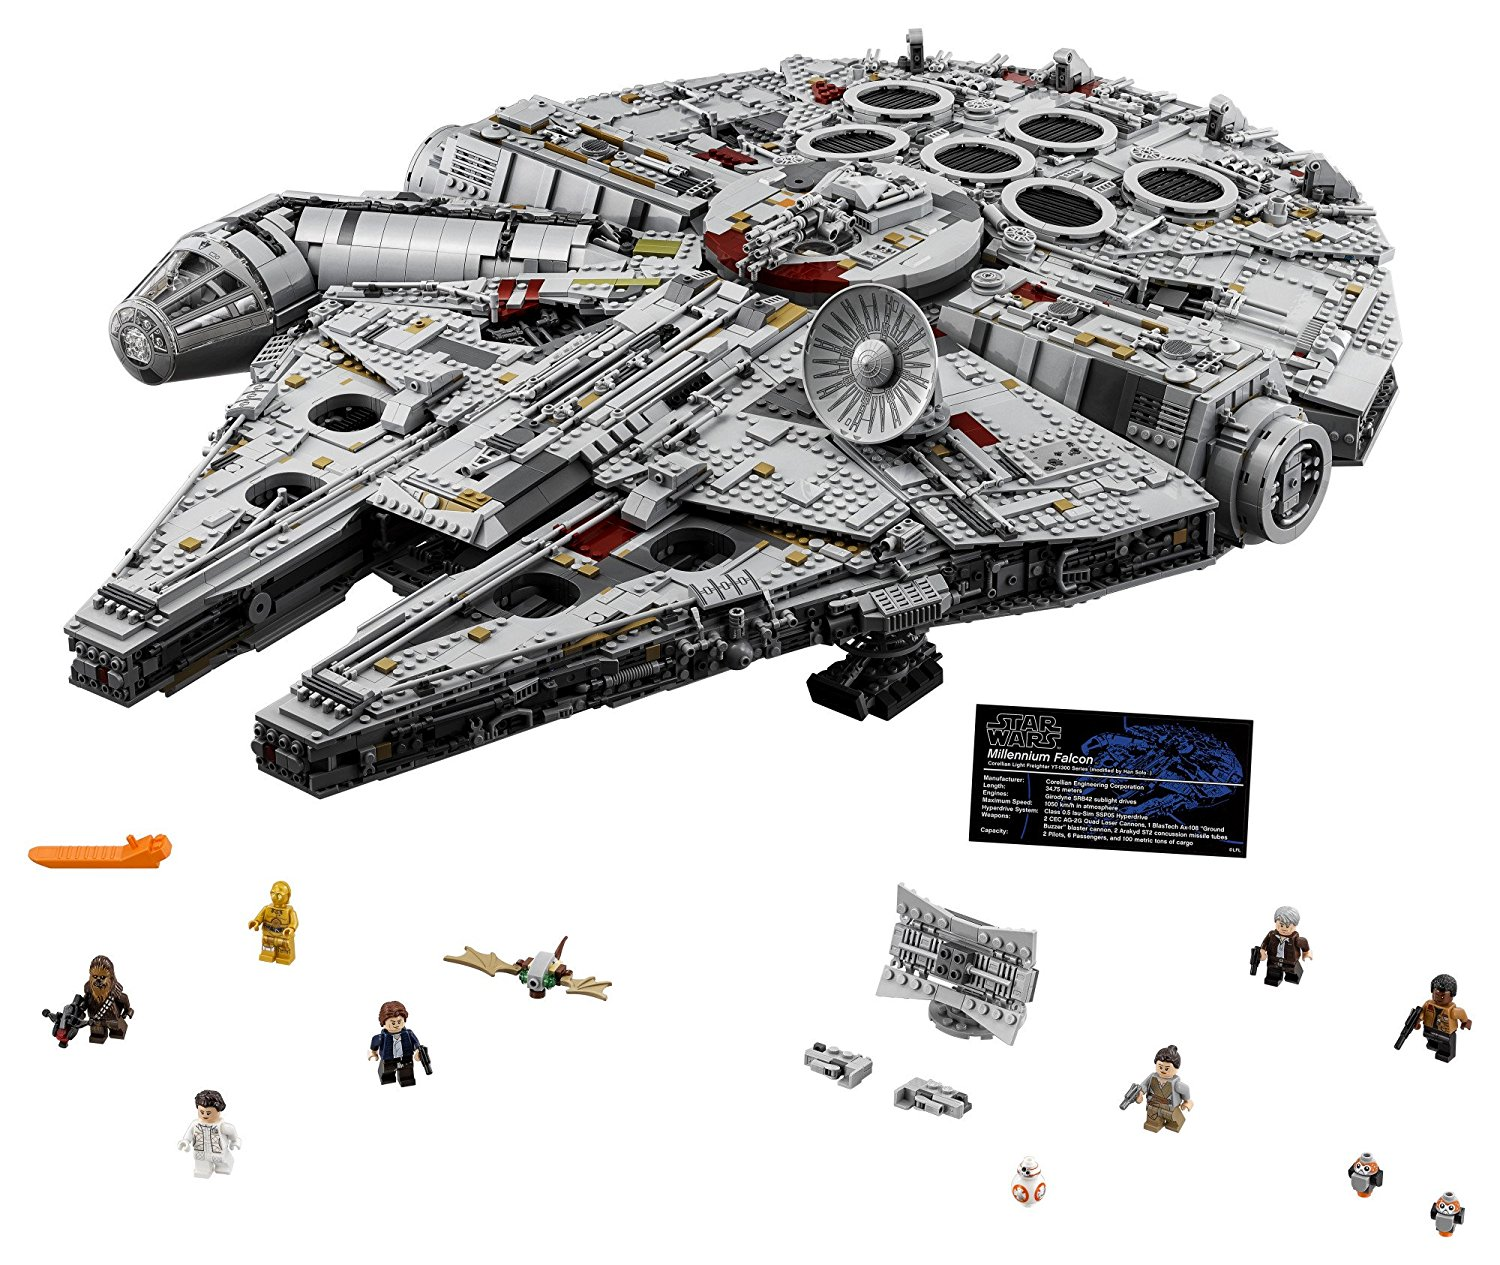 LEGO Star Wars 75192 Ultimate Millennium Falcon In-Stock On LEGO Shop For $799.99